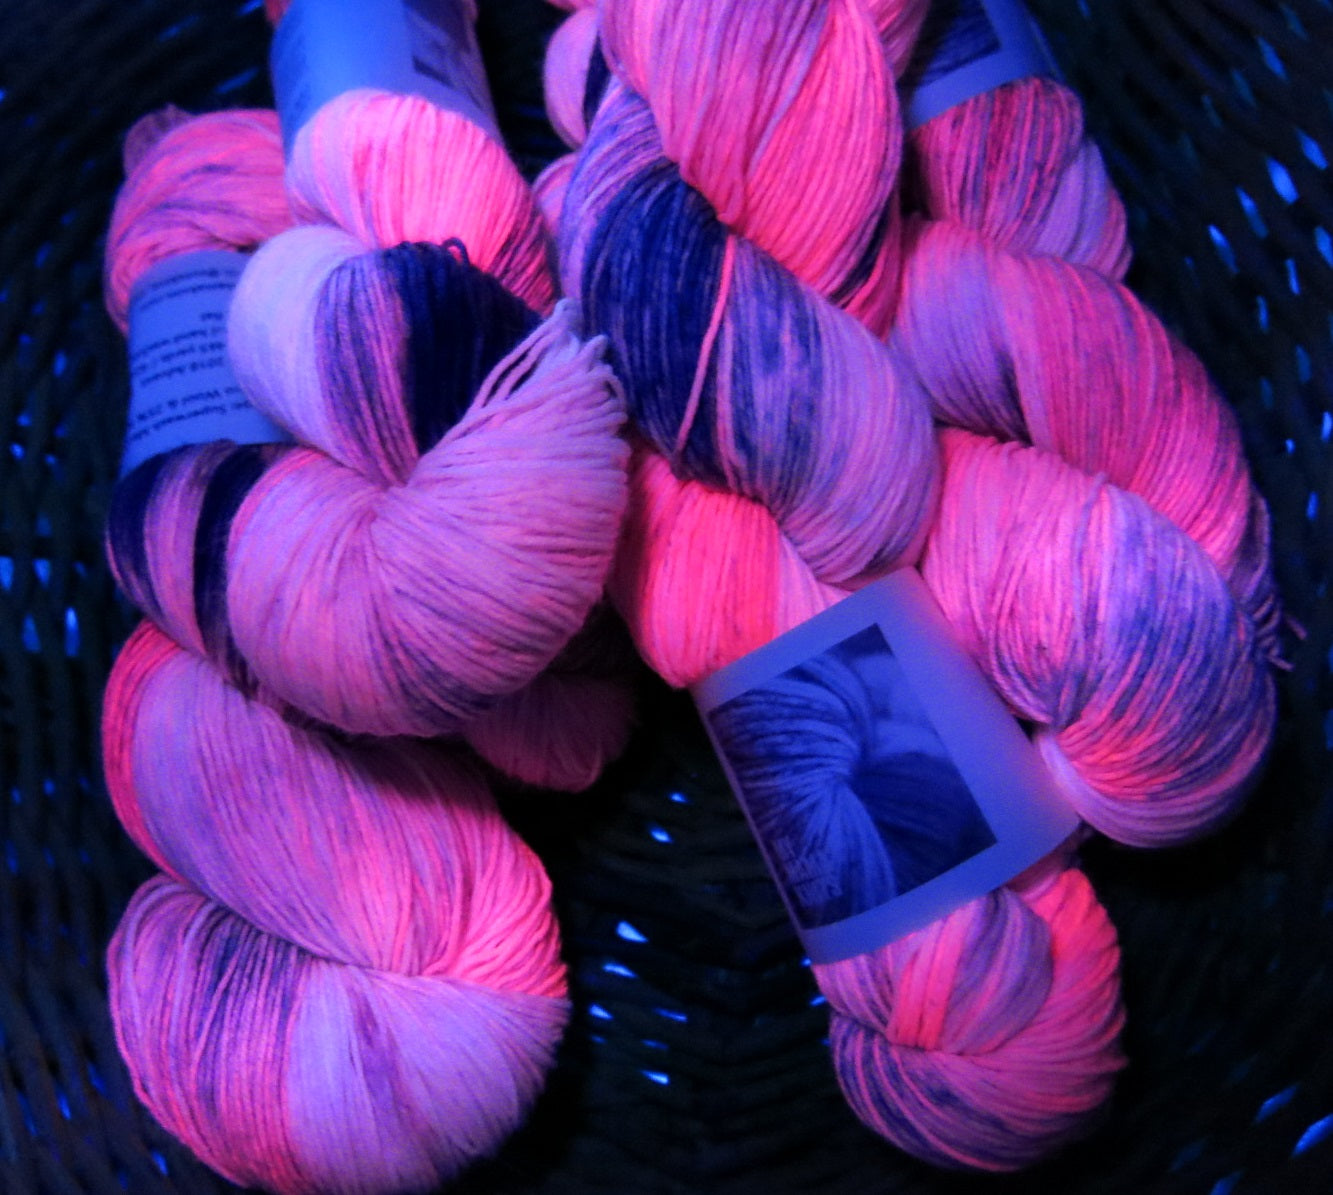 uv reactive pink yarn fluorescing under black light